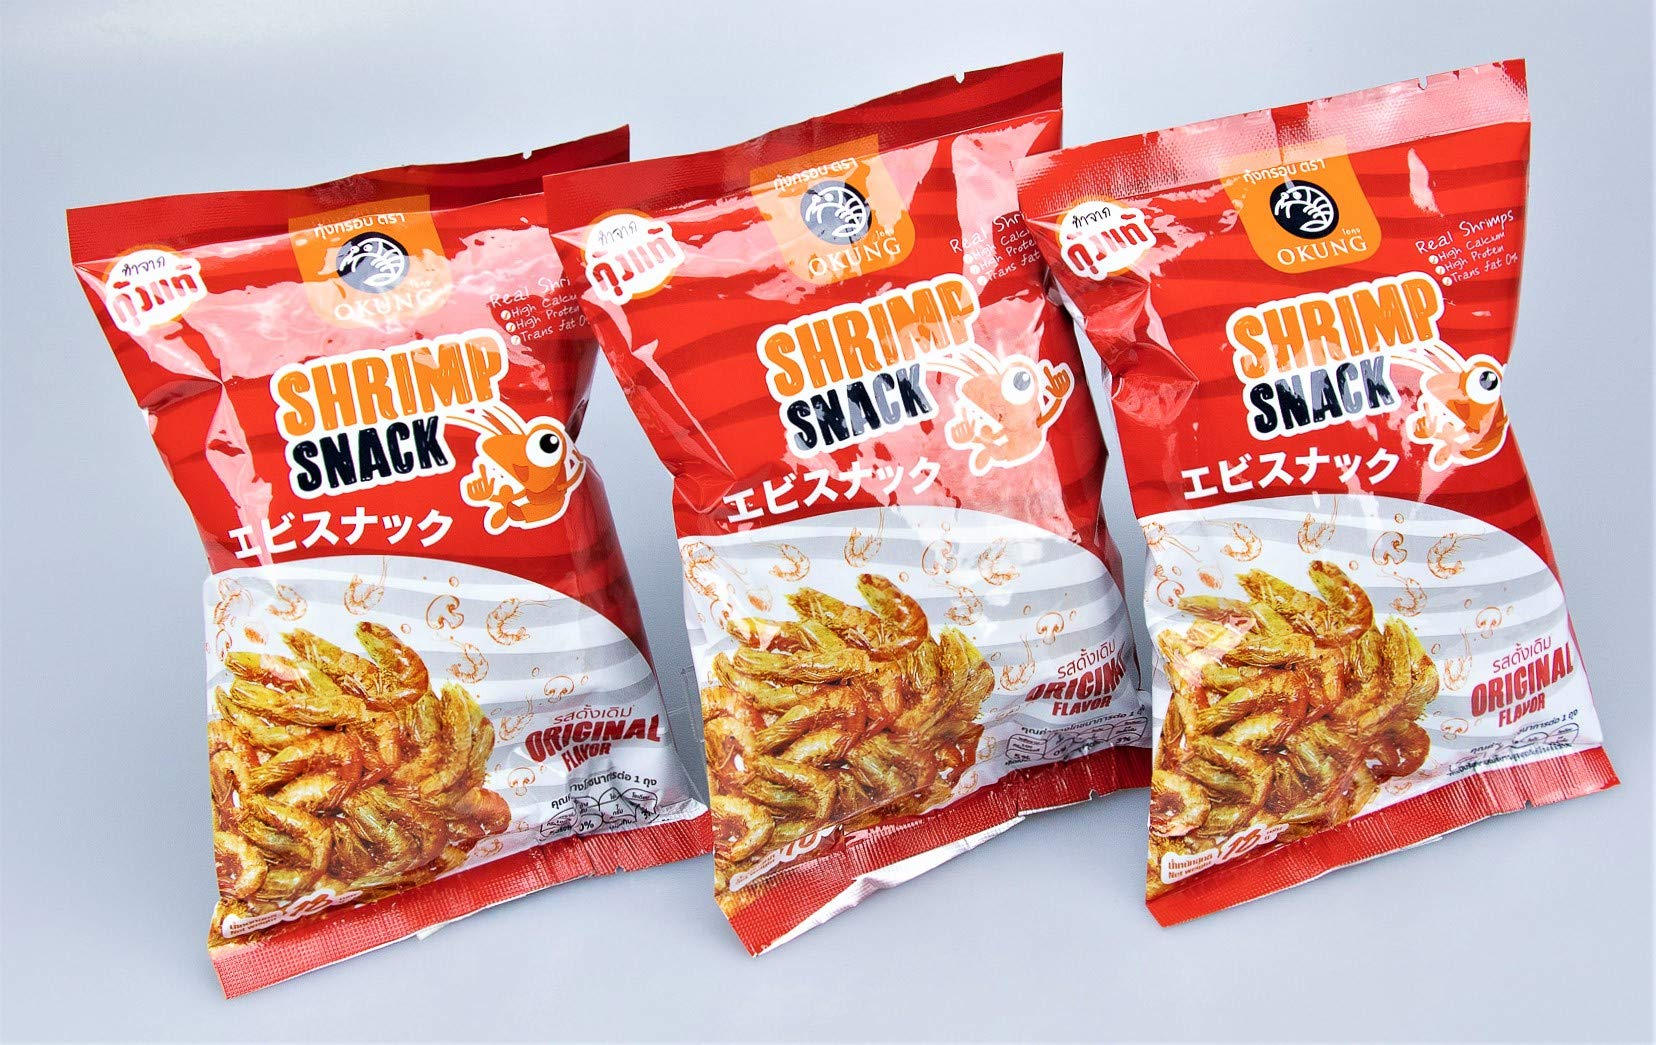 Okung Brand, Shrimp Snack Original Flavor 18g X 3 Packs by Kung